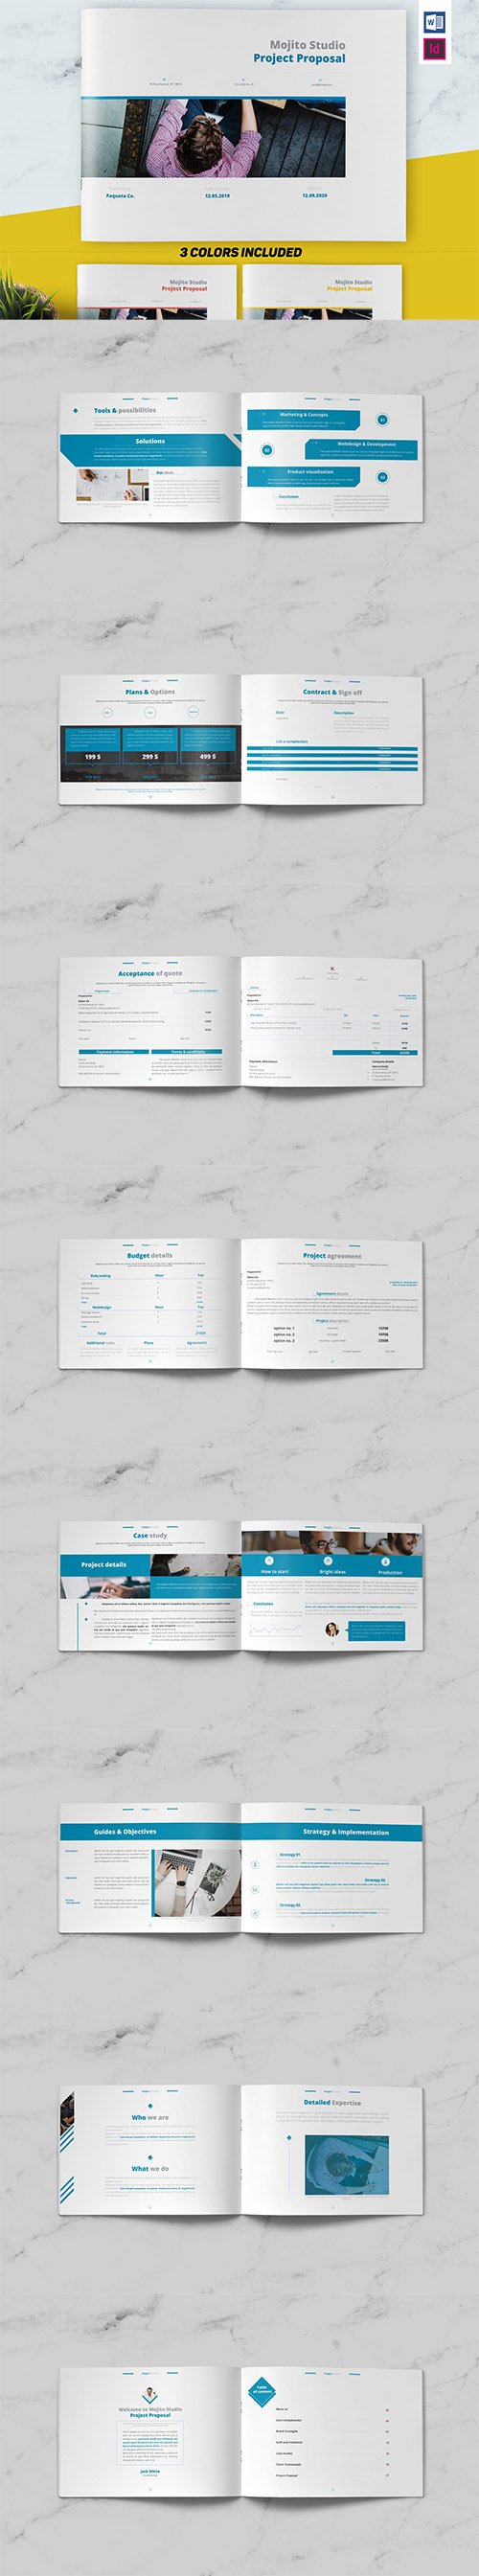 Project Proposal Indesign